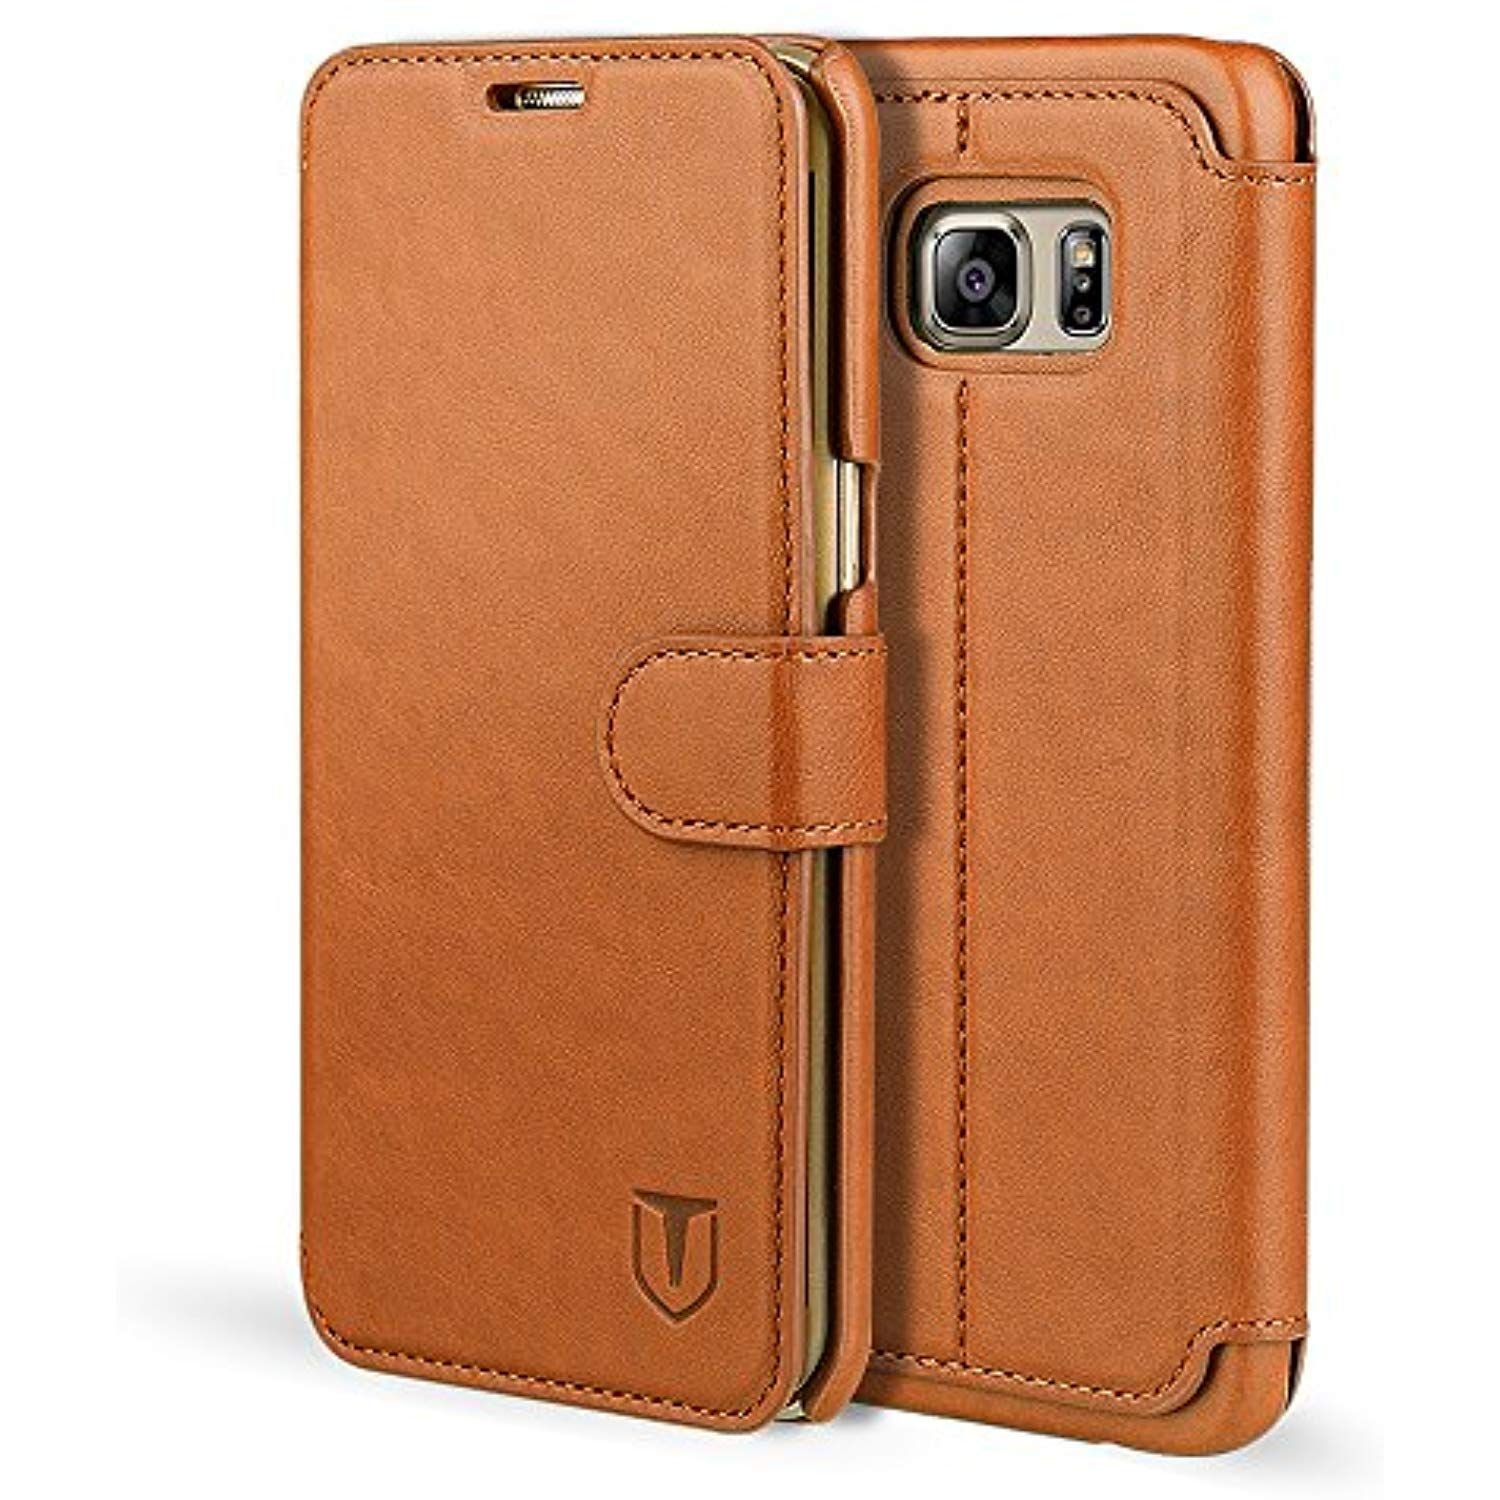 separation shoes 3f48e 153c0 Galaxy S6 Edge Case, TANNC Flip Leather Wallet Phone Case [Layered ...